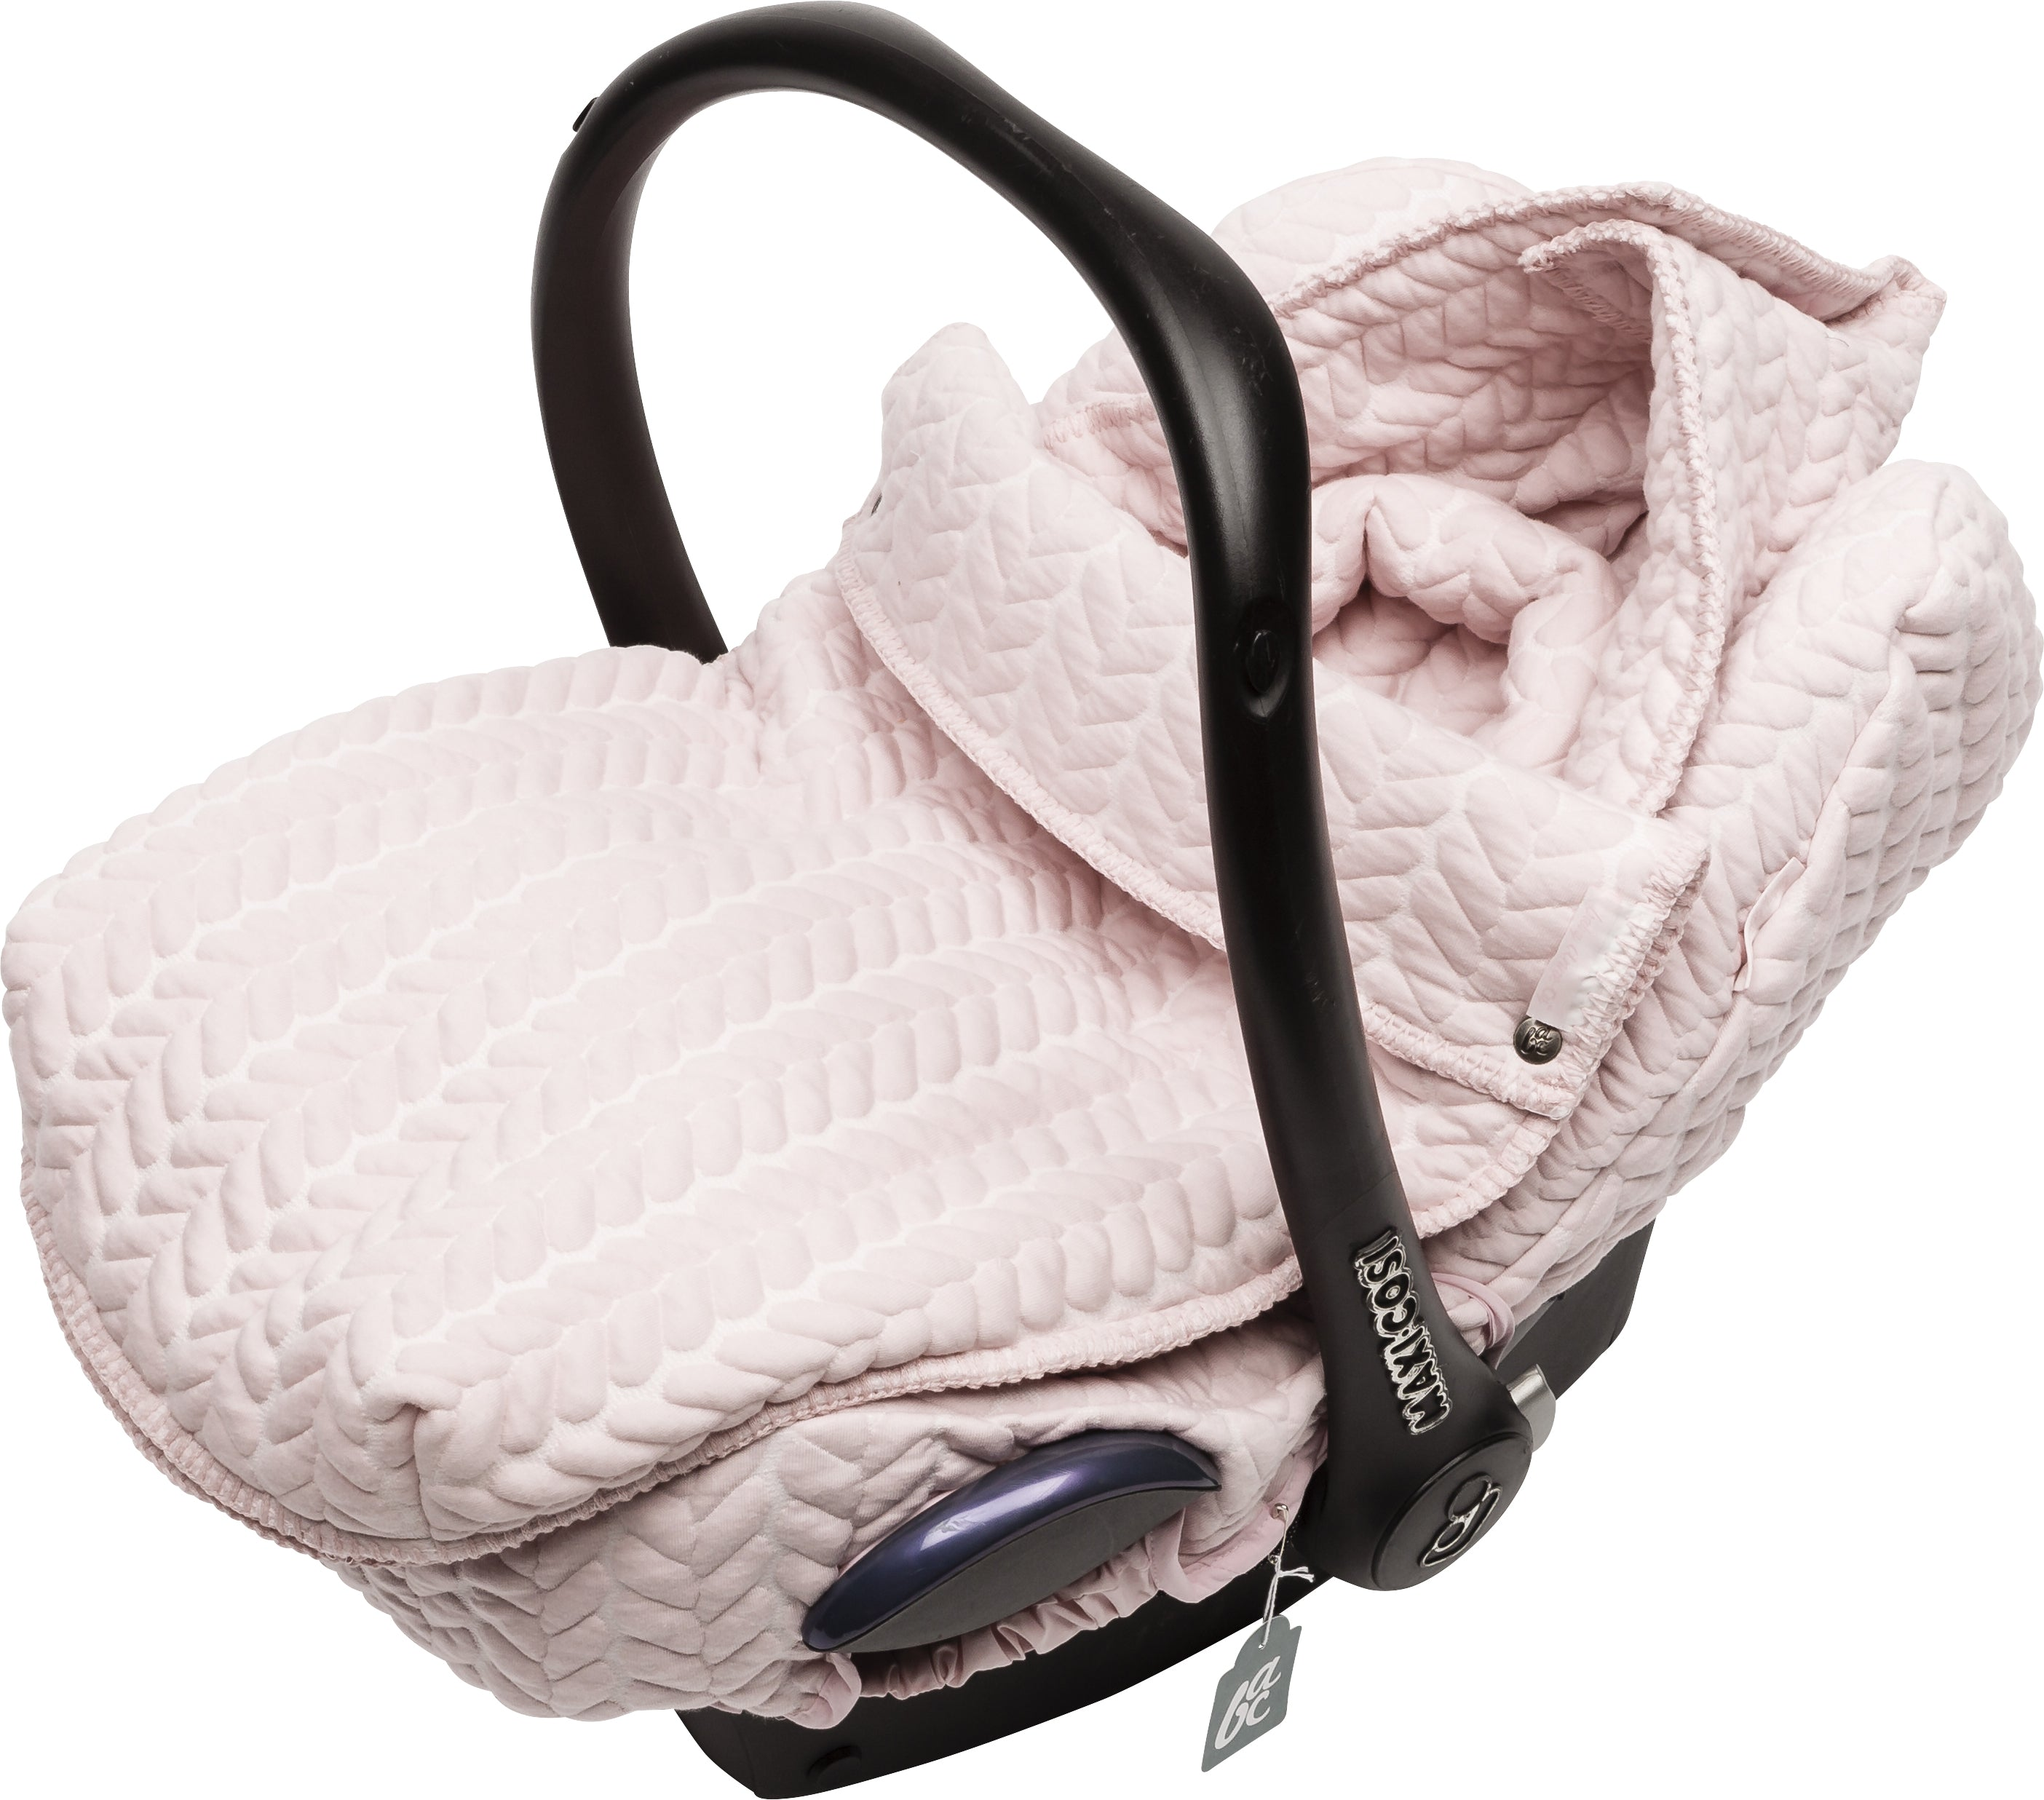 Autostoeltje hoes + voetenzak butterfly cable oud roze - Baby Anne-Cy